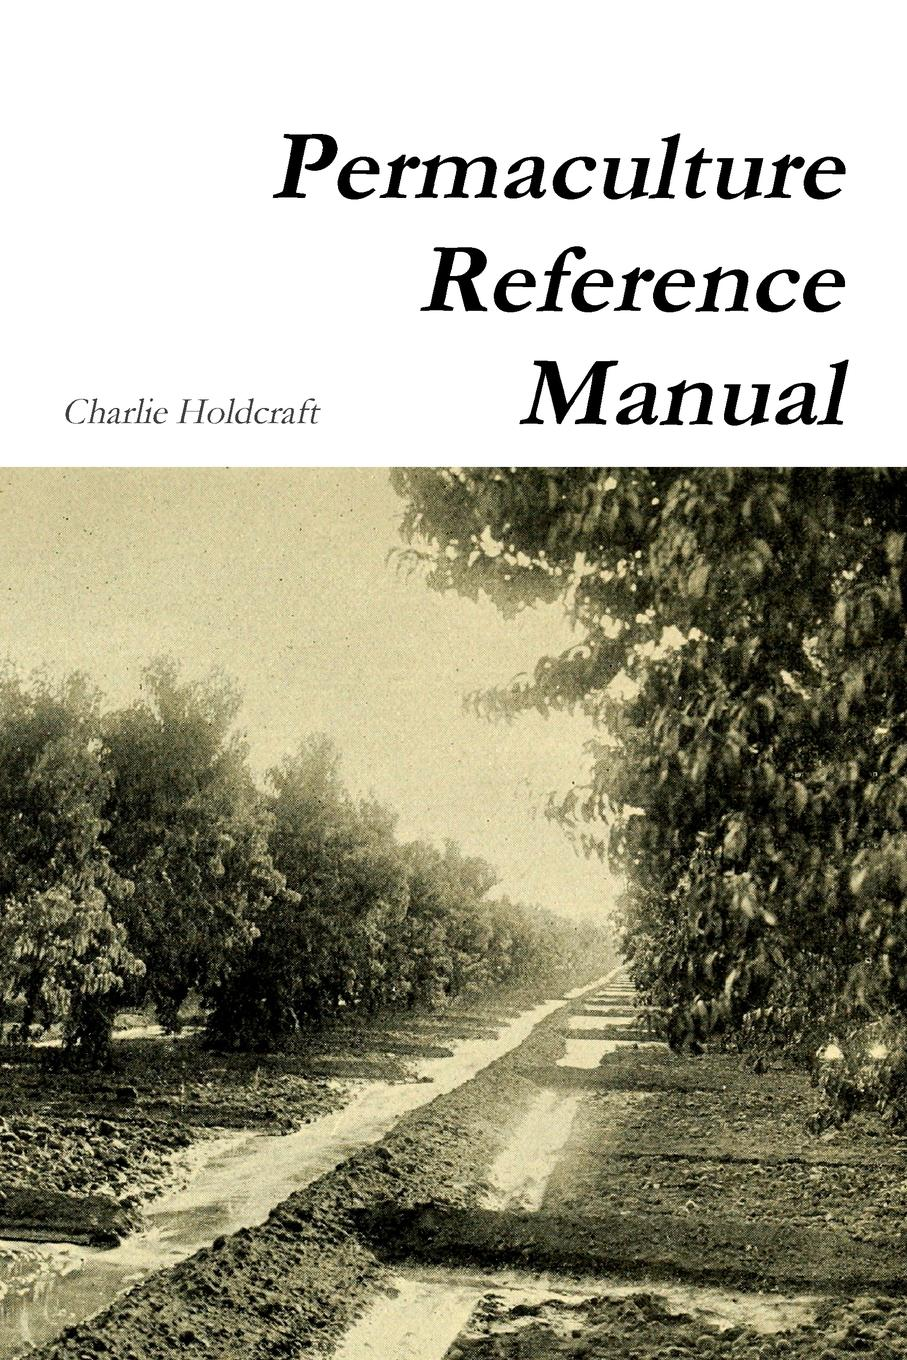 цены на Charlie Holdcraft Permaculture Reference Manual  в интернет-магазинах